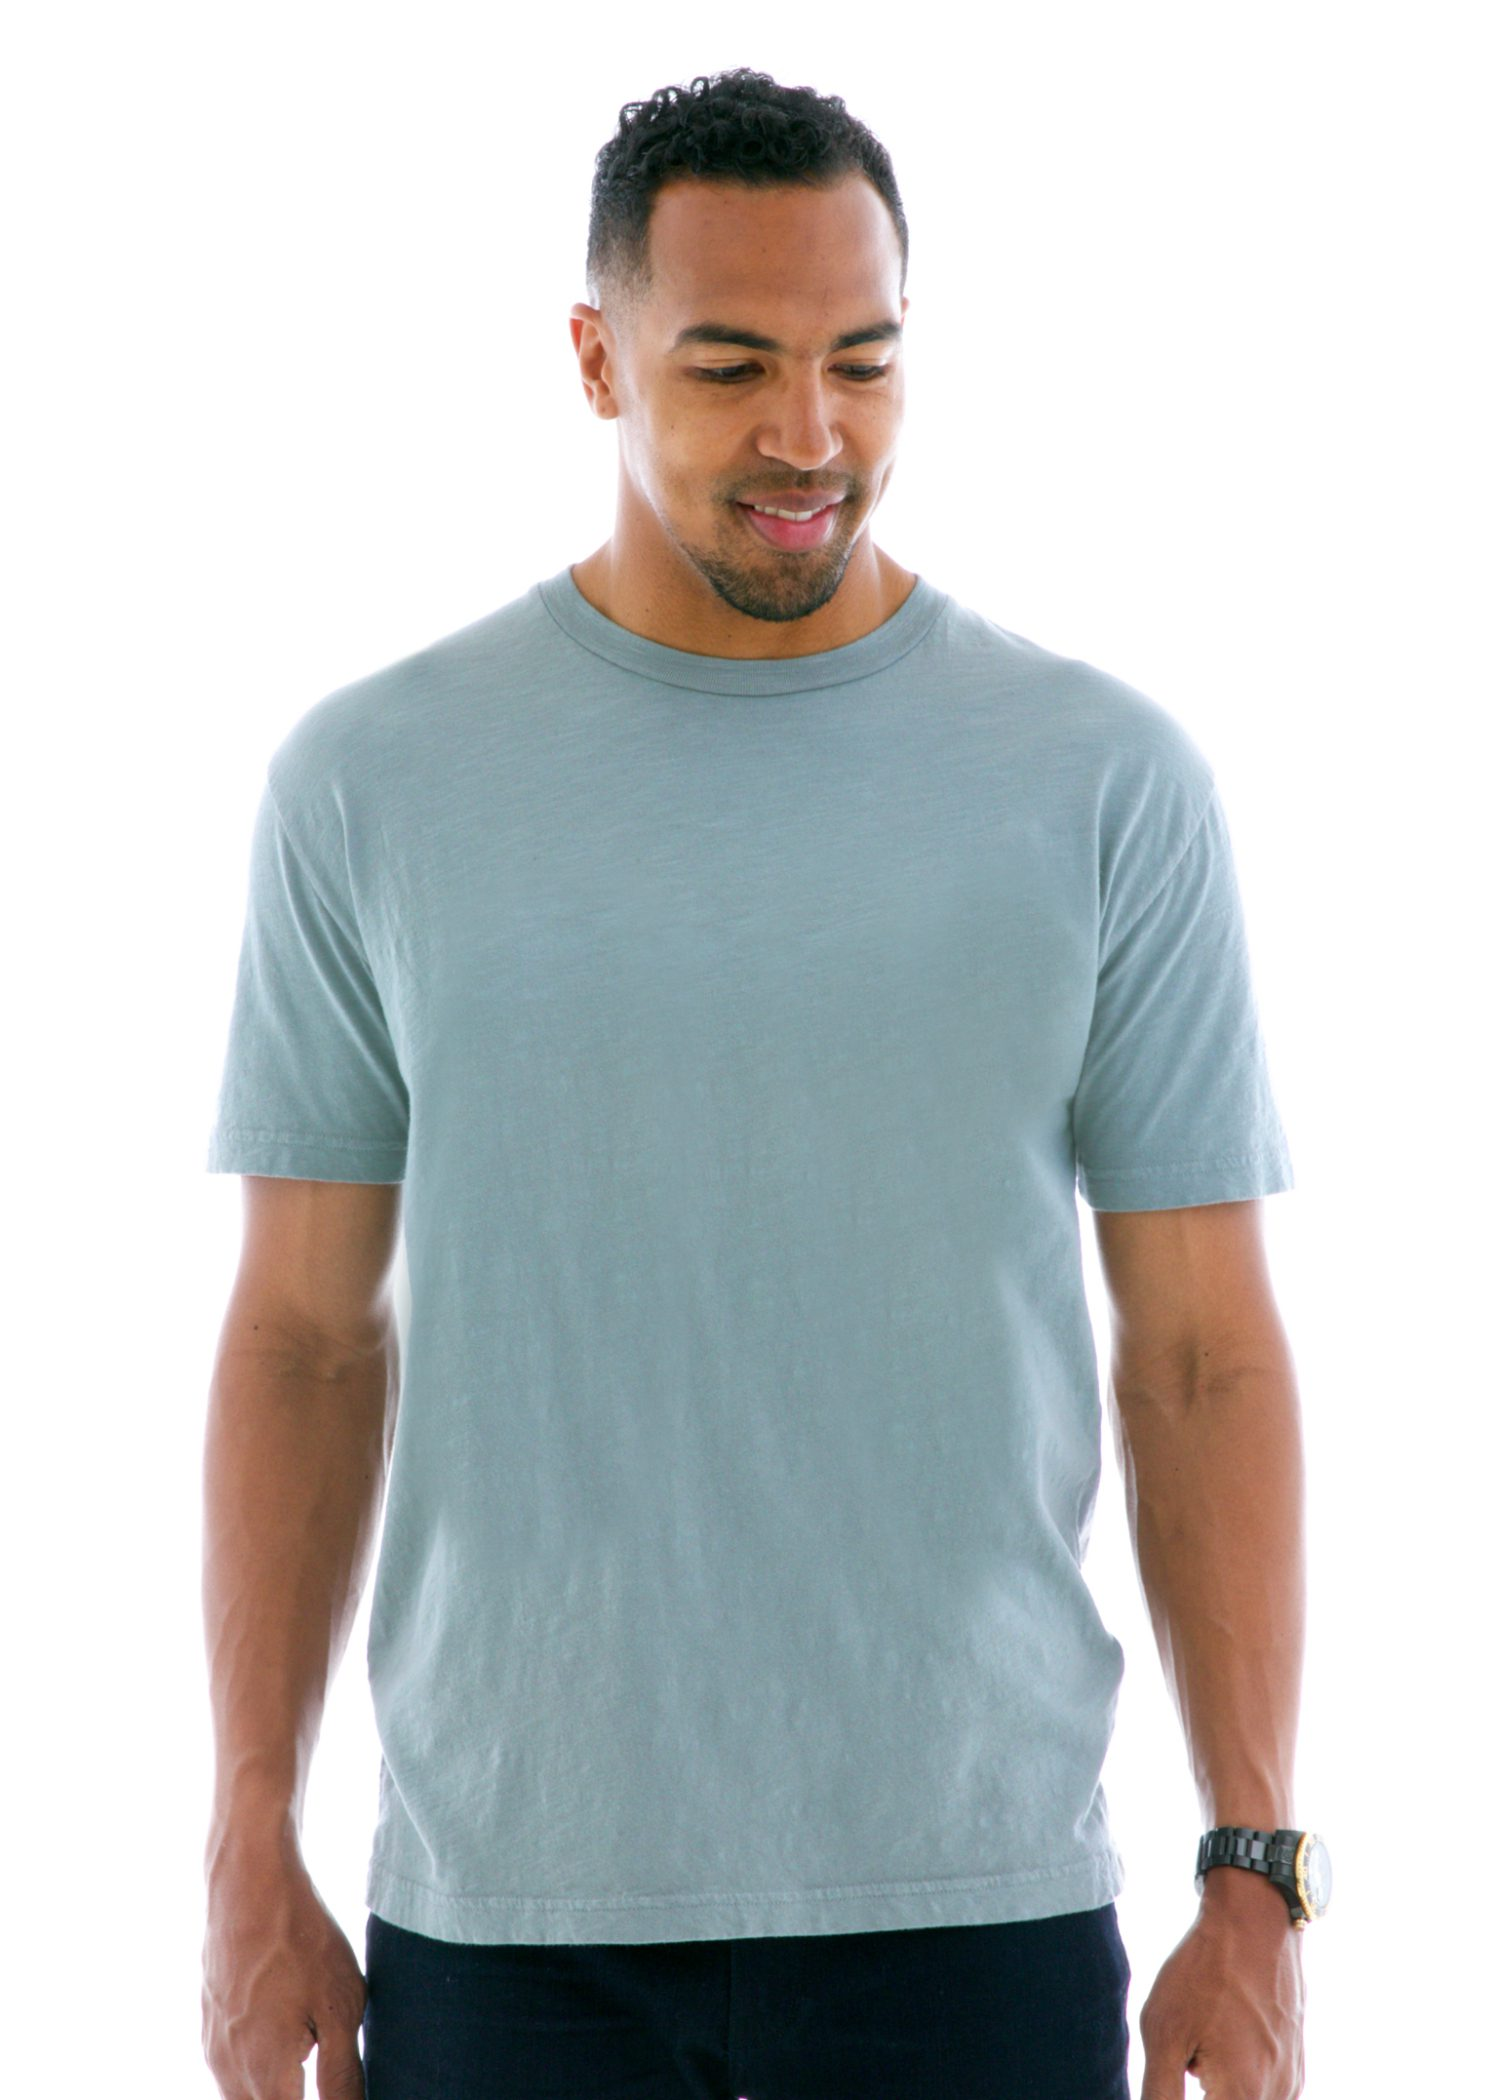 Men's Premium Slub Jersey Short Sleeve T-Shirt